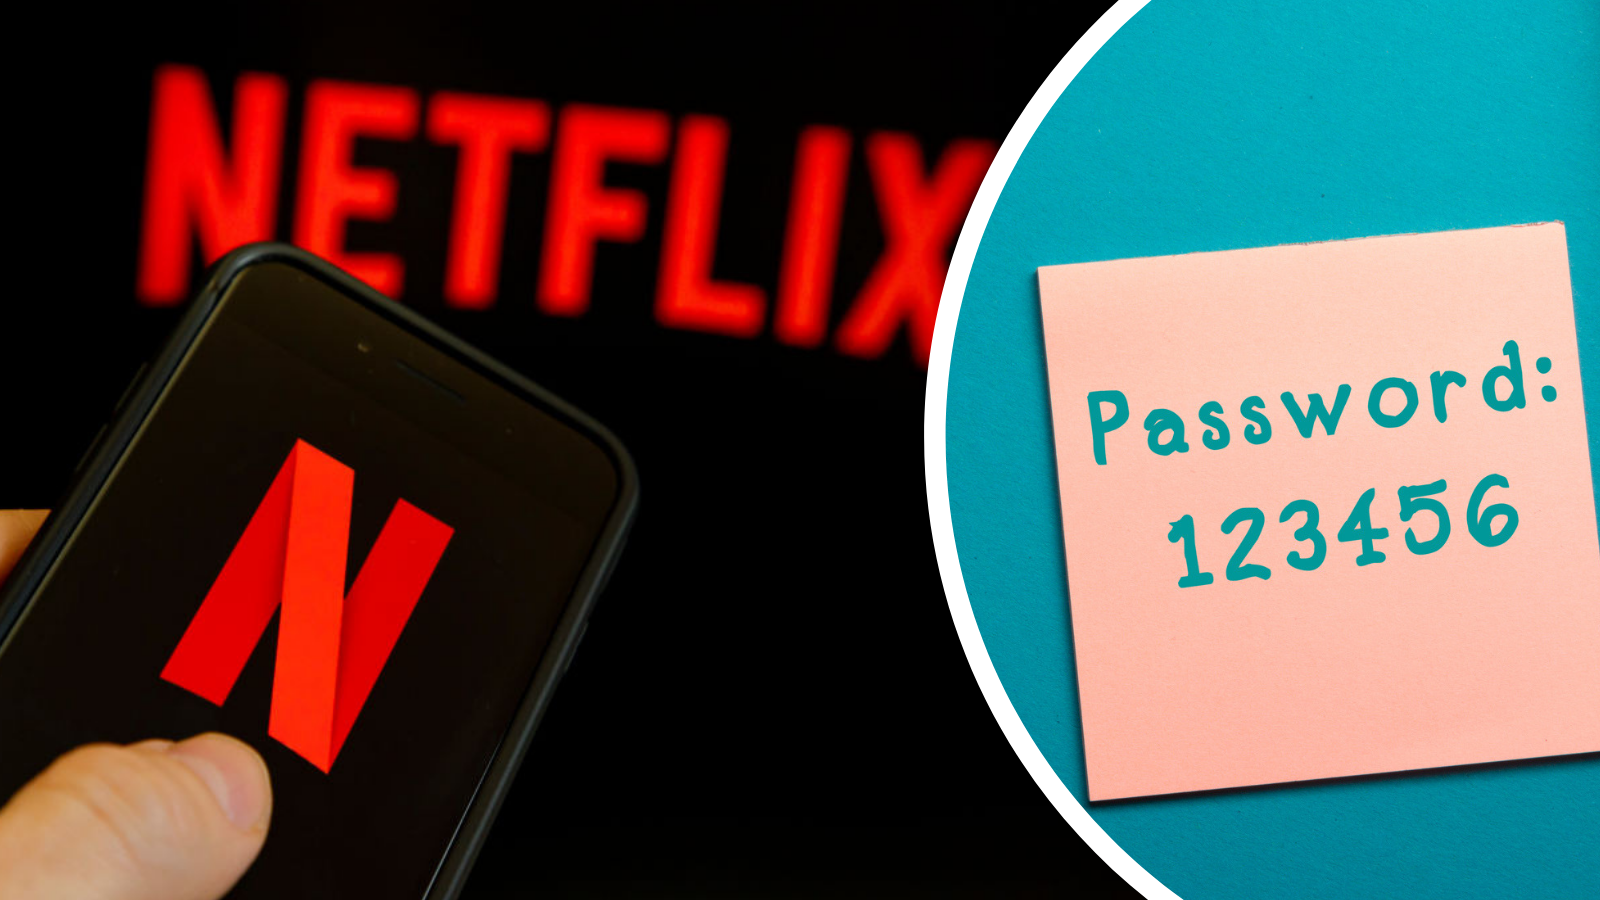 Netflix freeloaders could be forced to pay their way